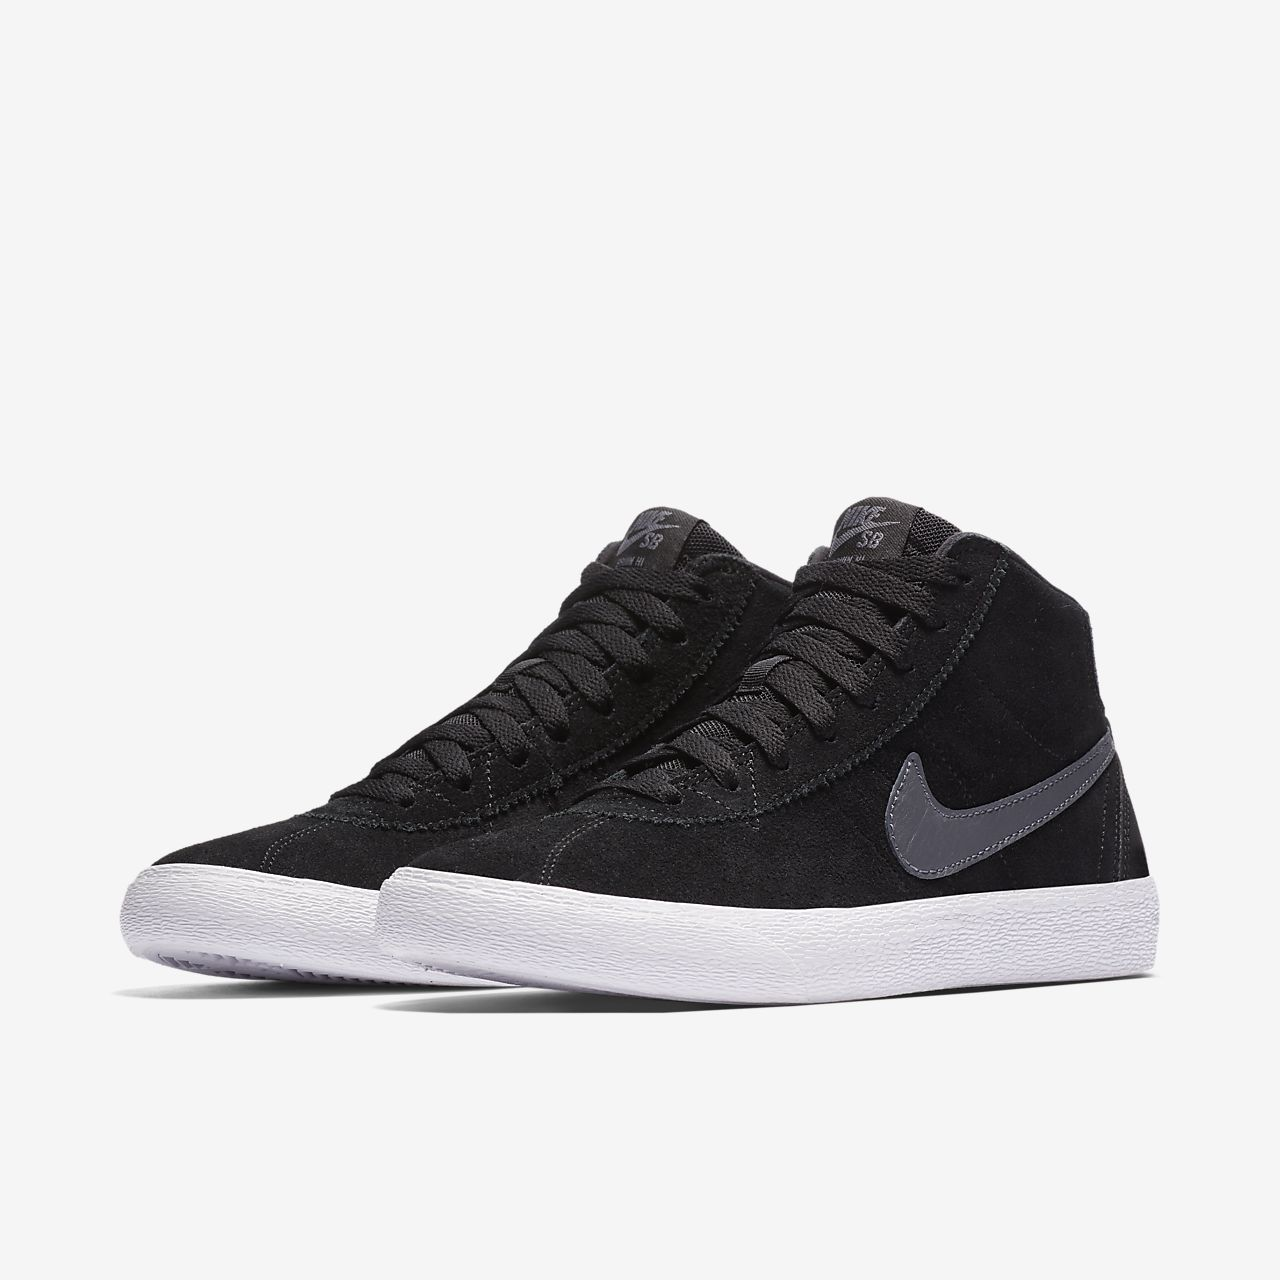 size 40 97652 80d09 Low Resolution Nike SB Bruin High Womens Skateboarding Shoe Nike SB Bruin  High Womens Skateboarding Shoe